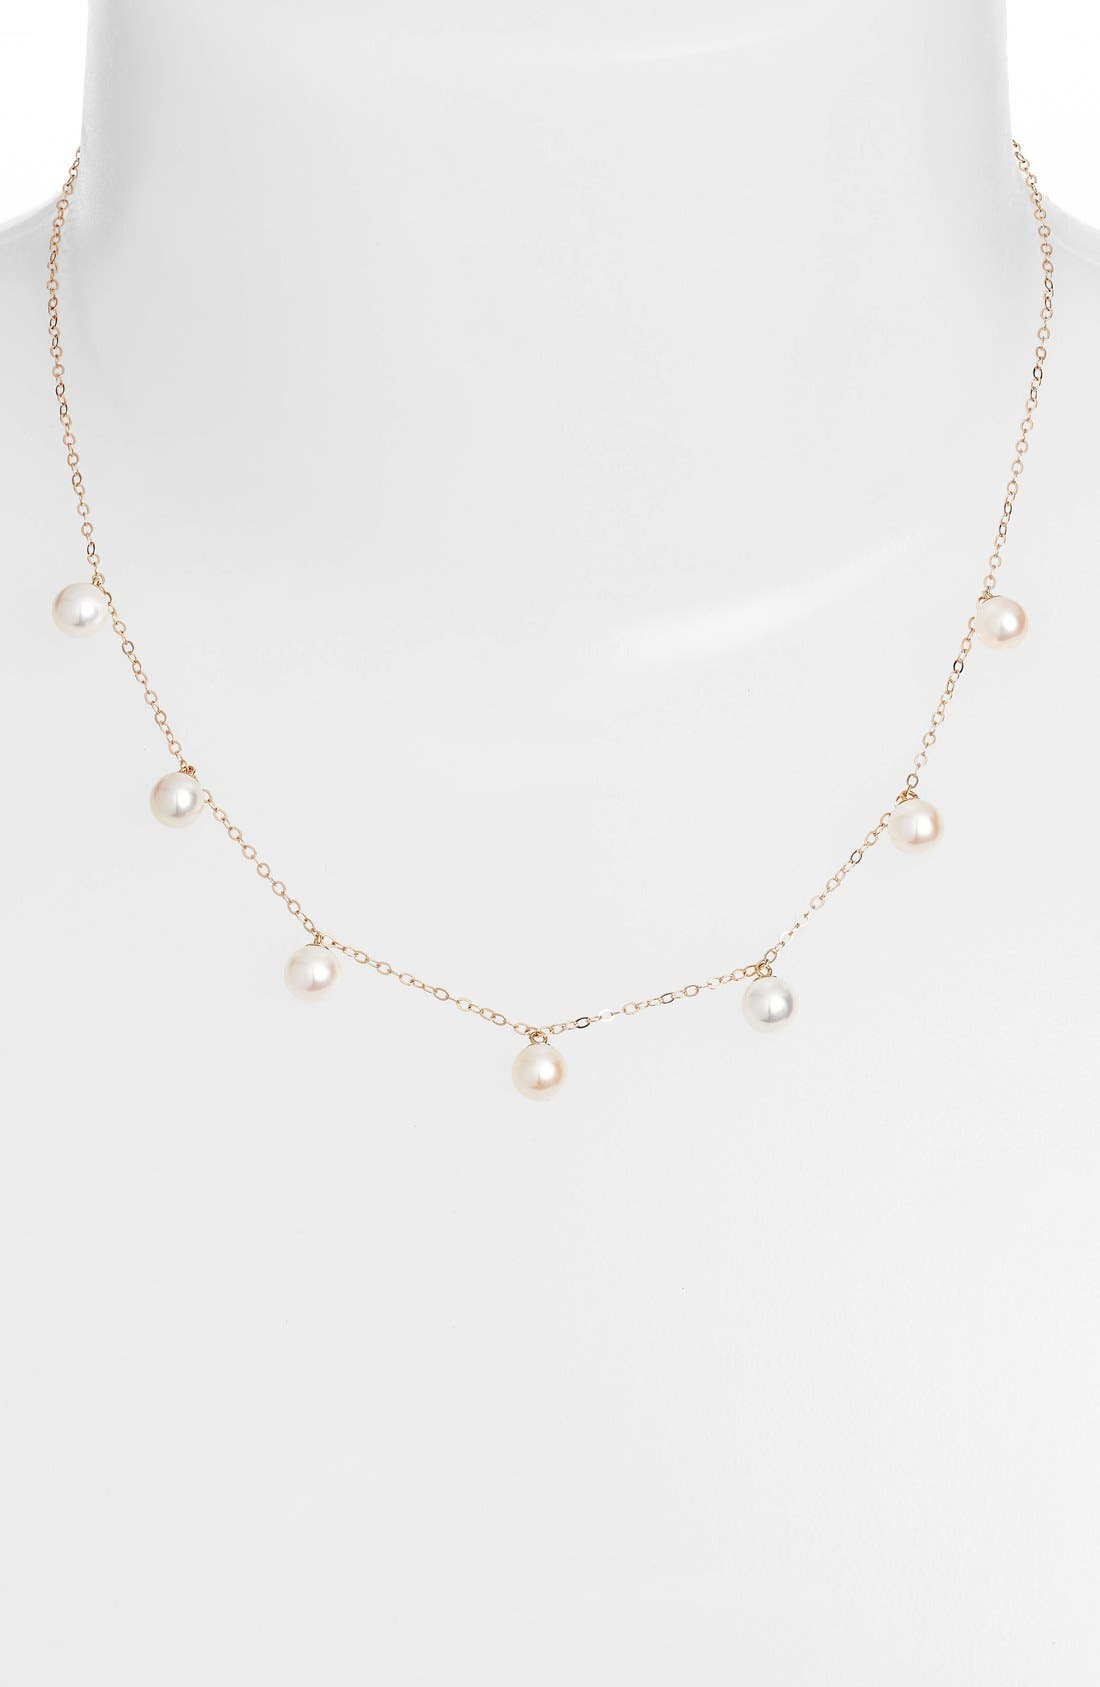 Pearl Collar Necklace,                             Main thumbnail 1, color,                             YELLOW GOLD/ PEARL